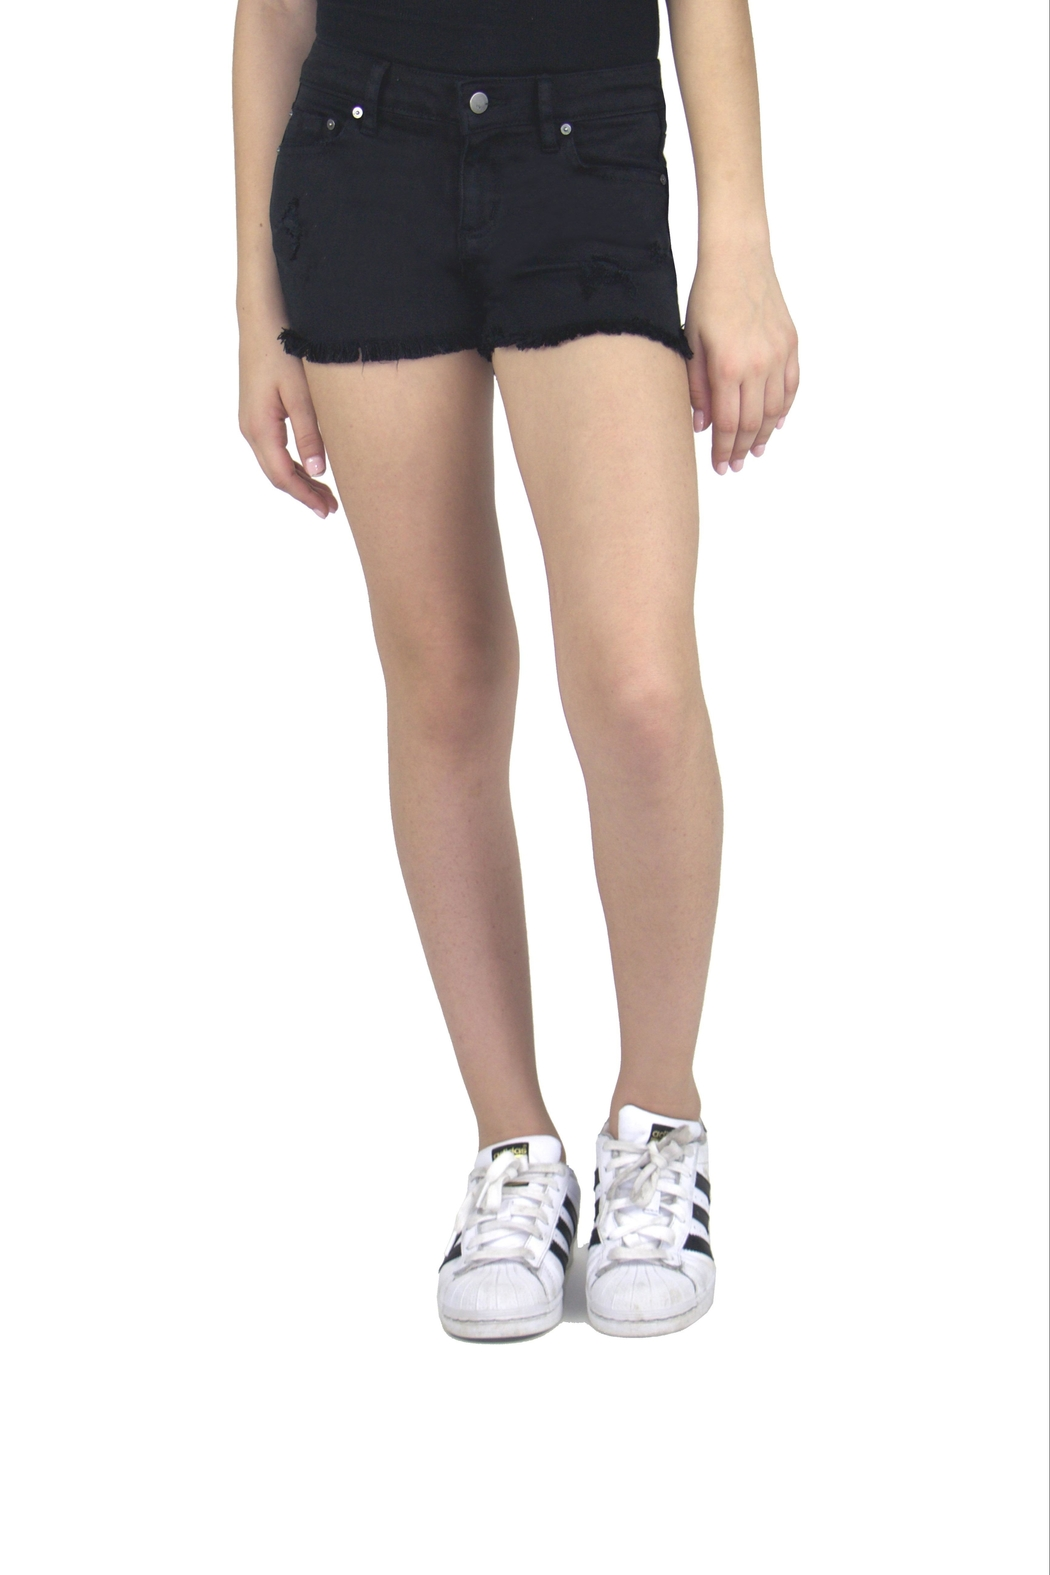 Tractr Fray-Hem Denim Shorts - Front Cropped Image